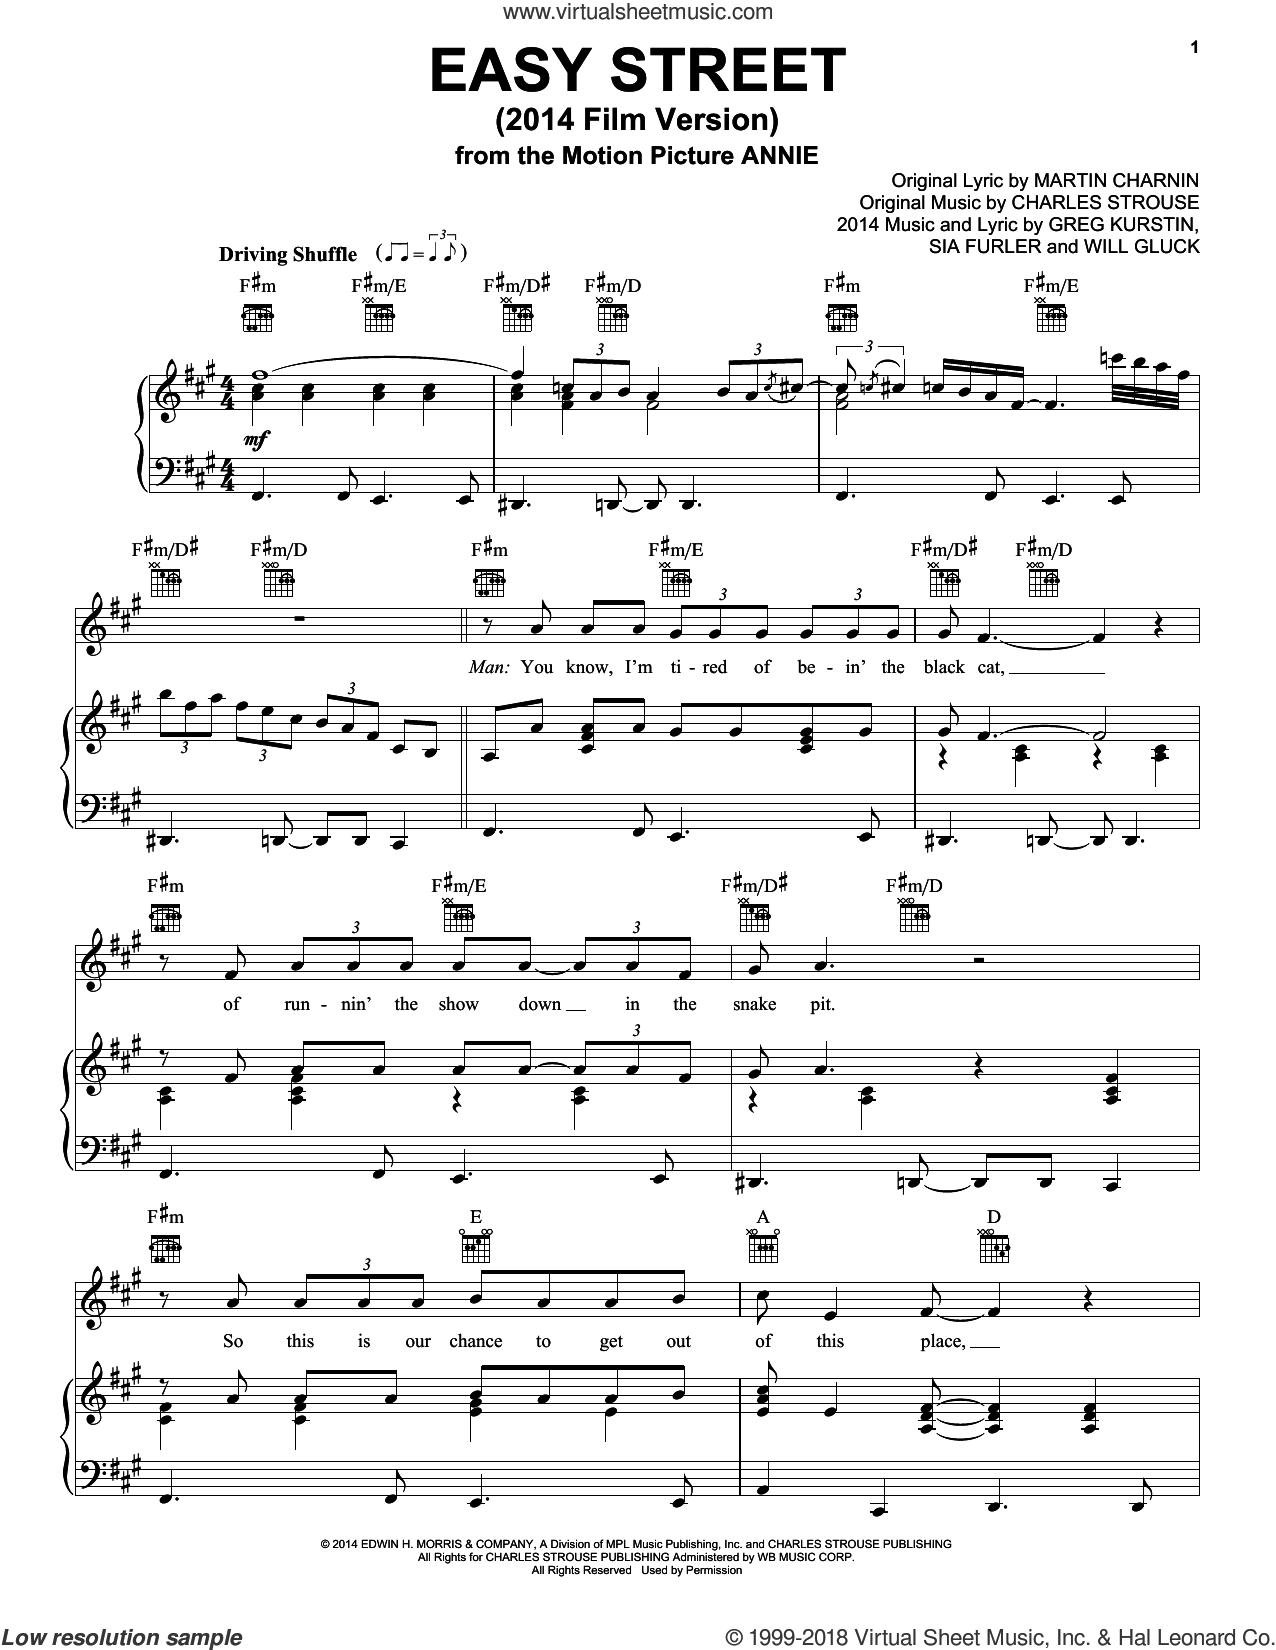 Easy Street (2014 Film Version) sheet music for voice, piano or guitar by Will Gluck